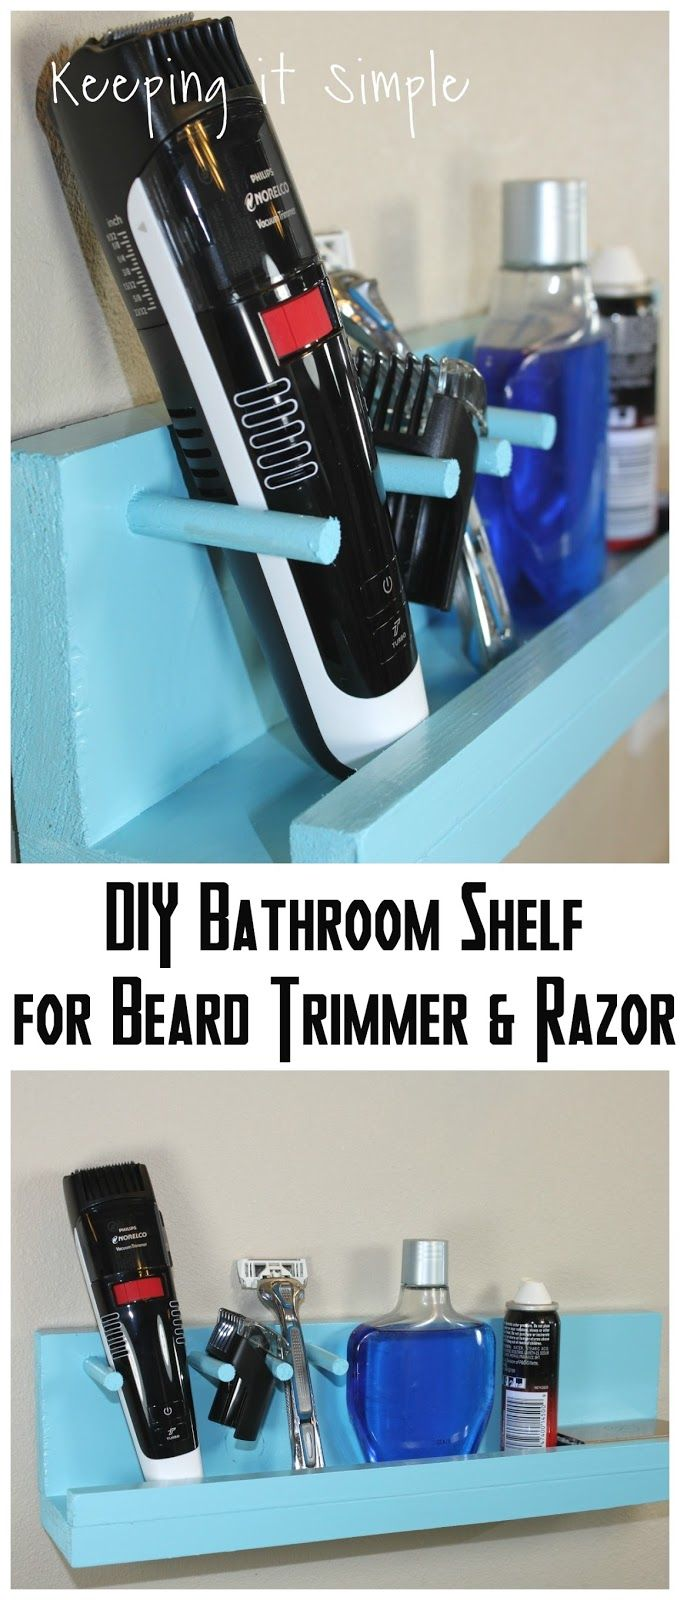 Gift Idea for Men- DIY Bathroom Shelf for Beard Trimmer and Razor ...